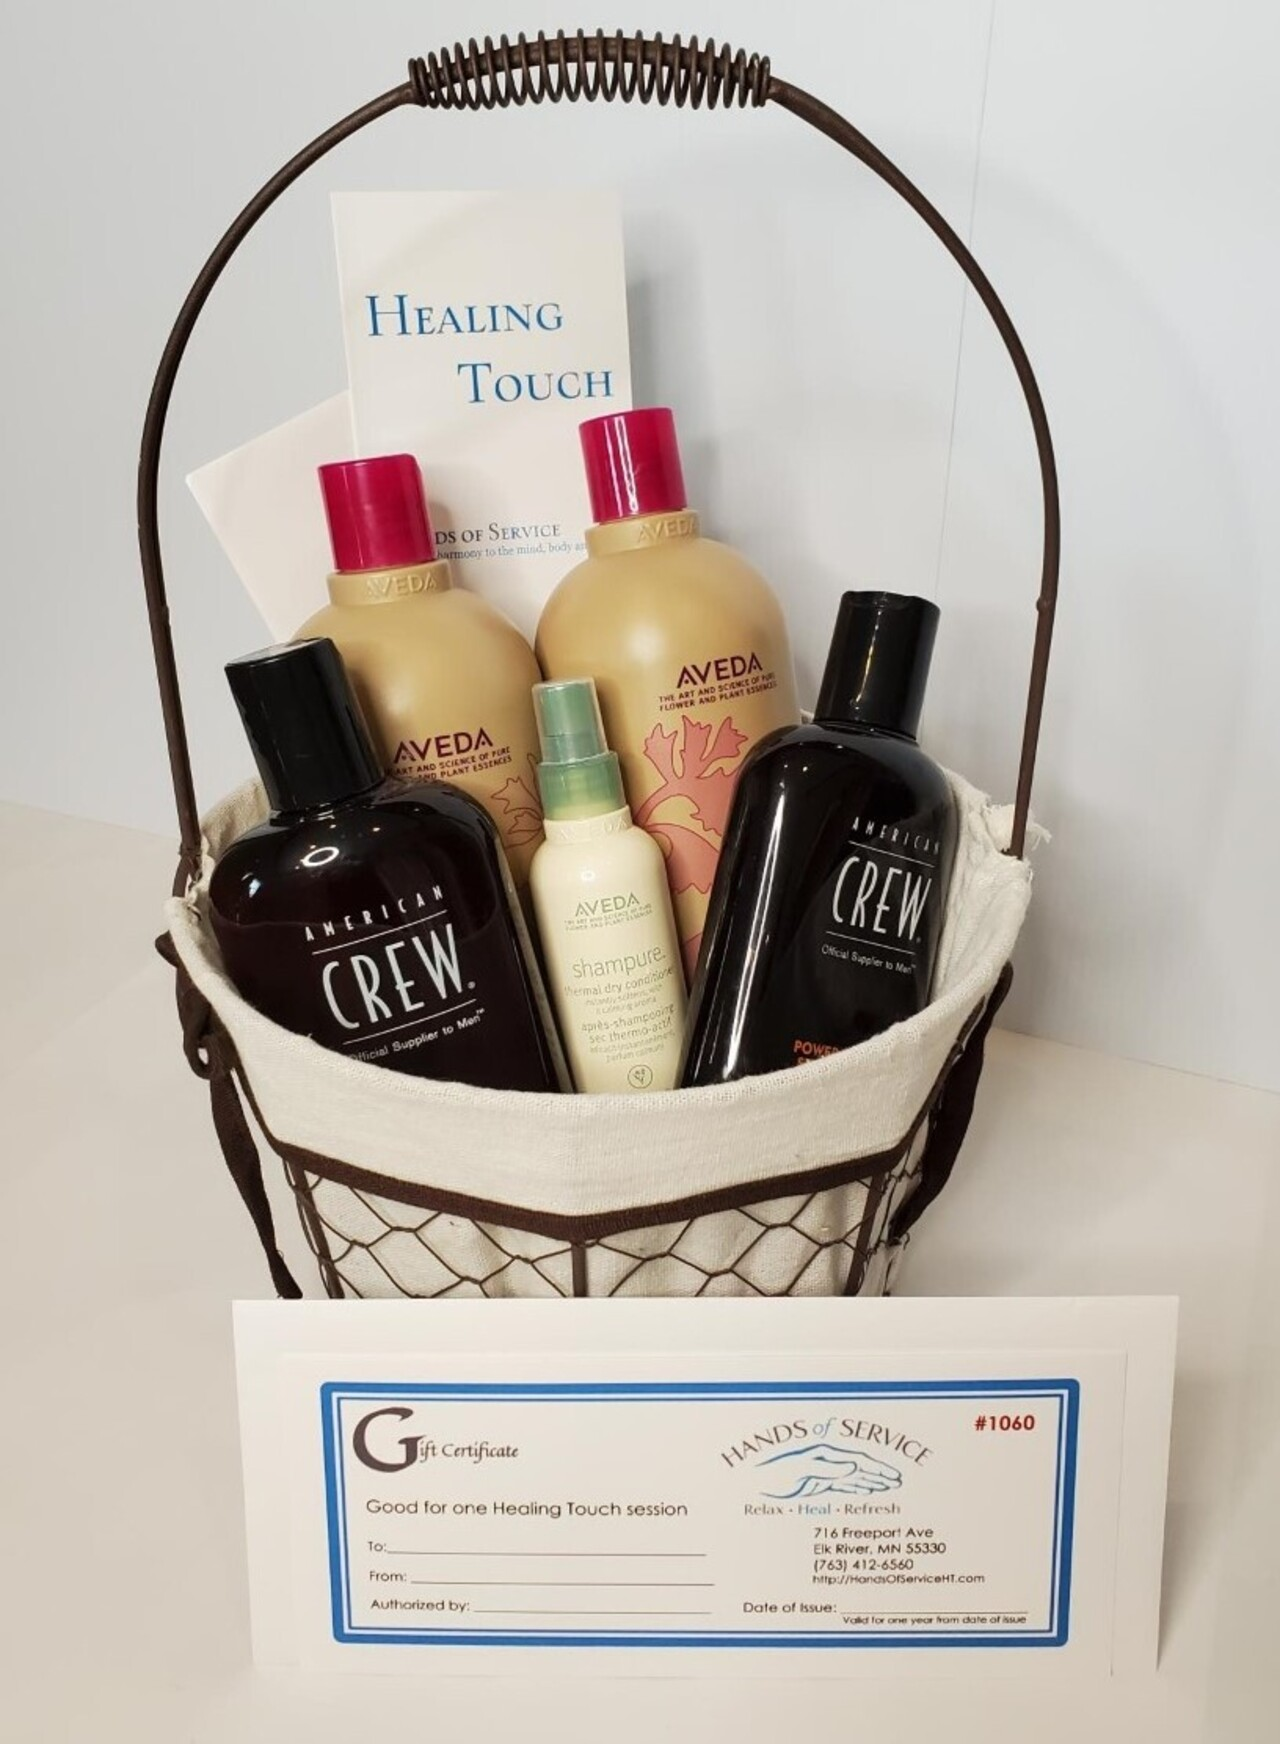 422. His and Hers Care Basket